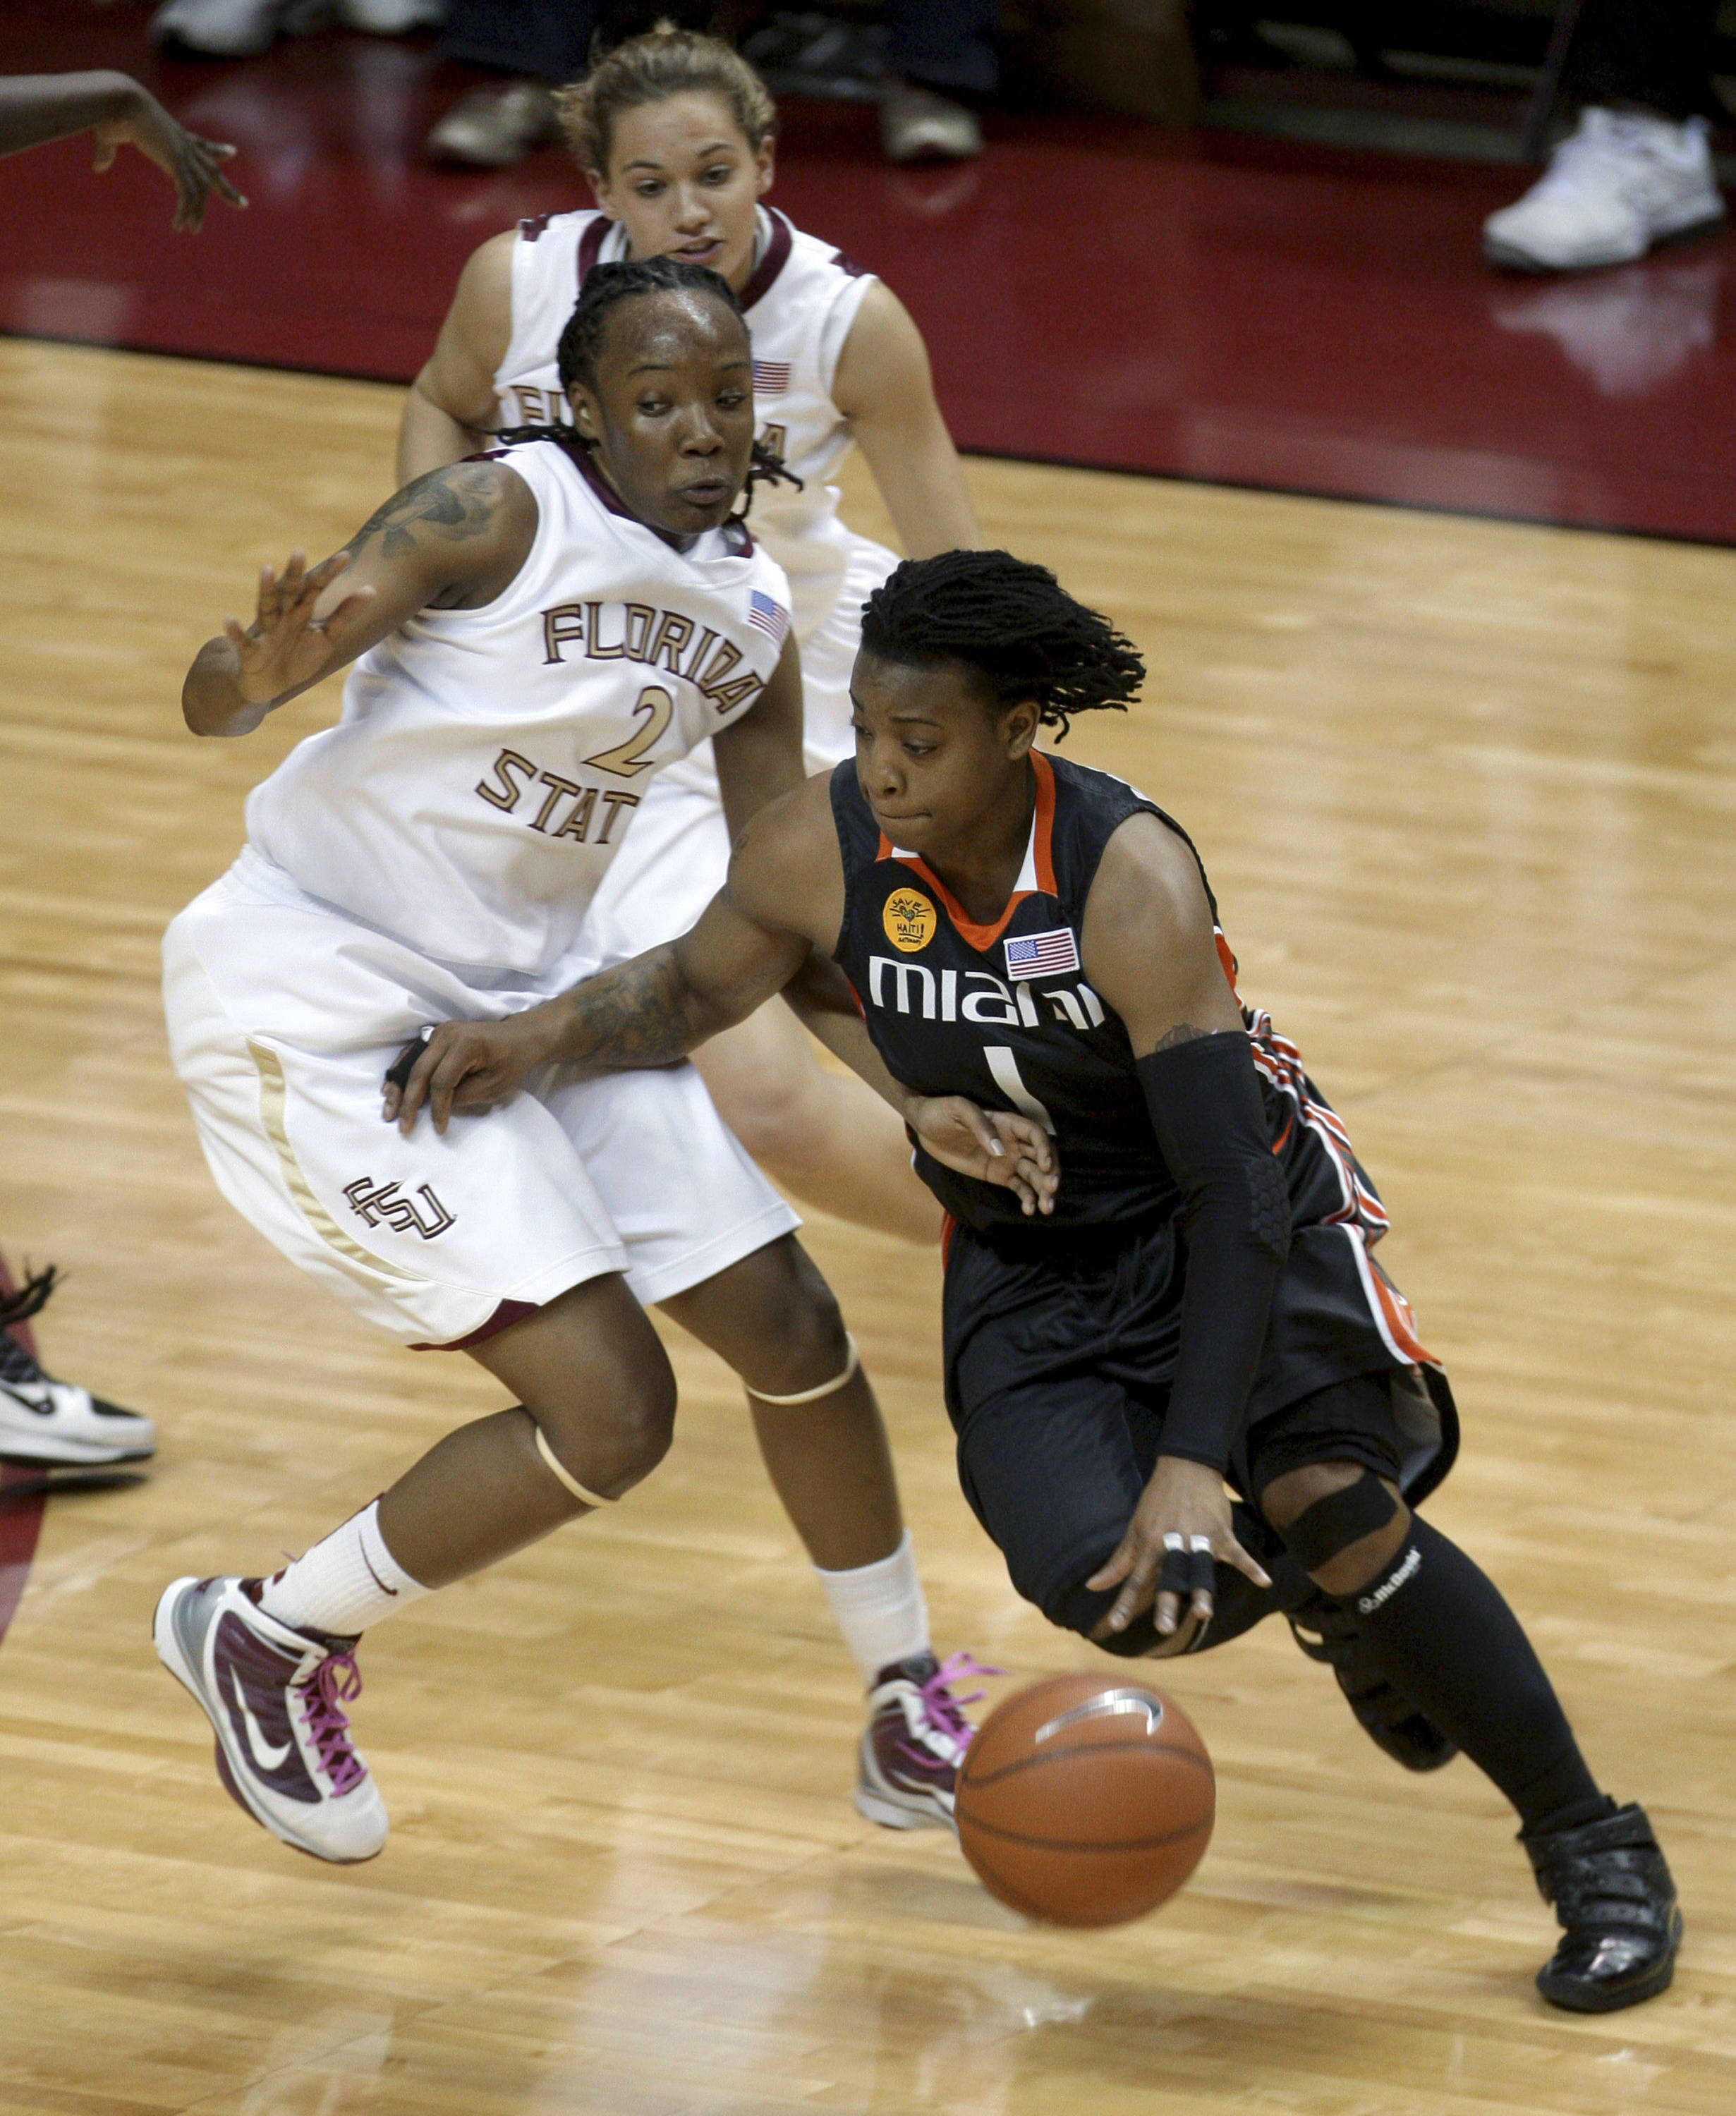 Miami's Riquana Williams, right, drives past Florida State's Alysha Harvin during the first half of an NCAA college basketball game Thursday, Feb. 25, 2010, in Tallahassee, Fla.(AP Photo/Phil Coale)